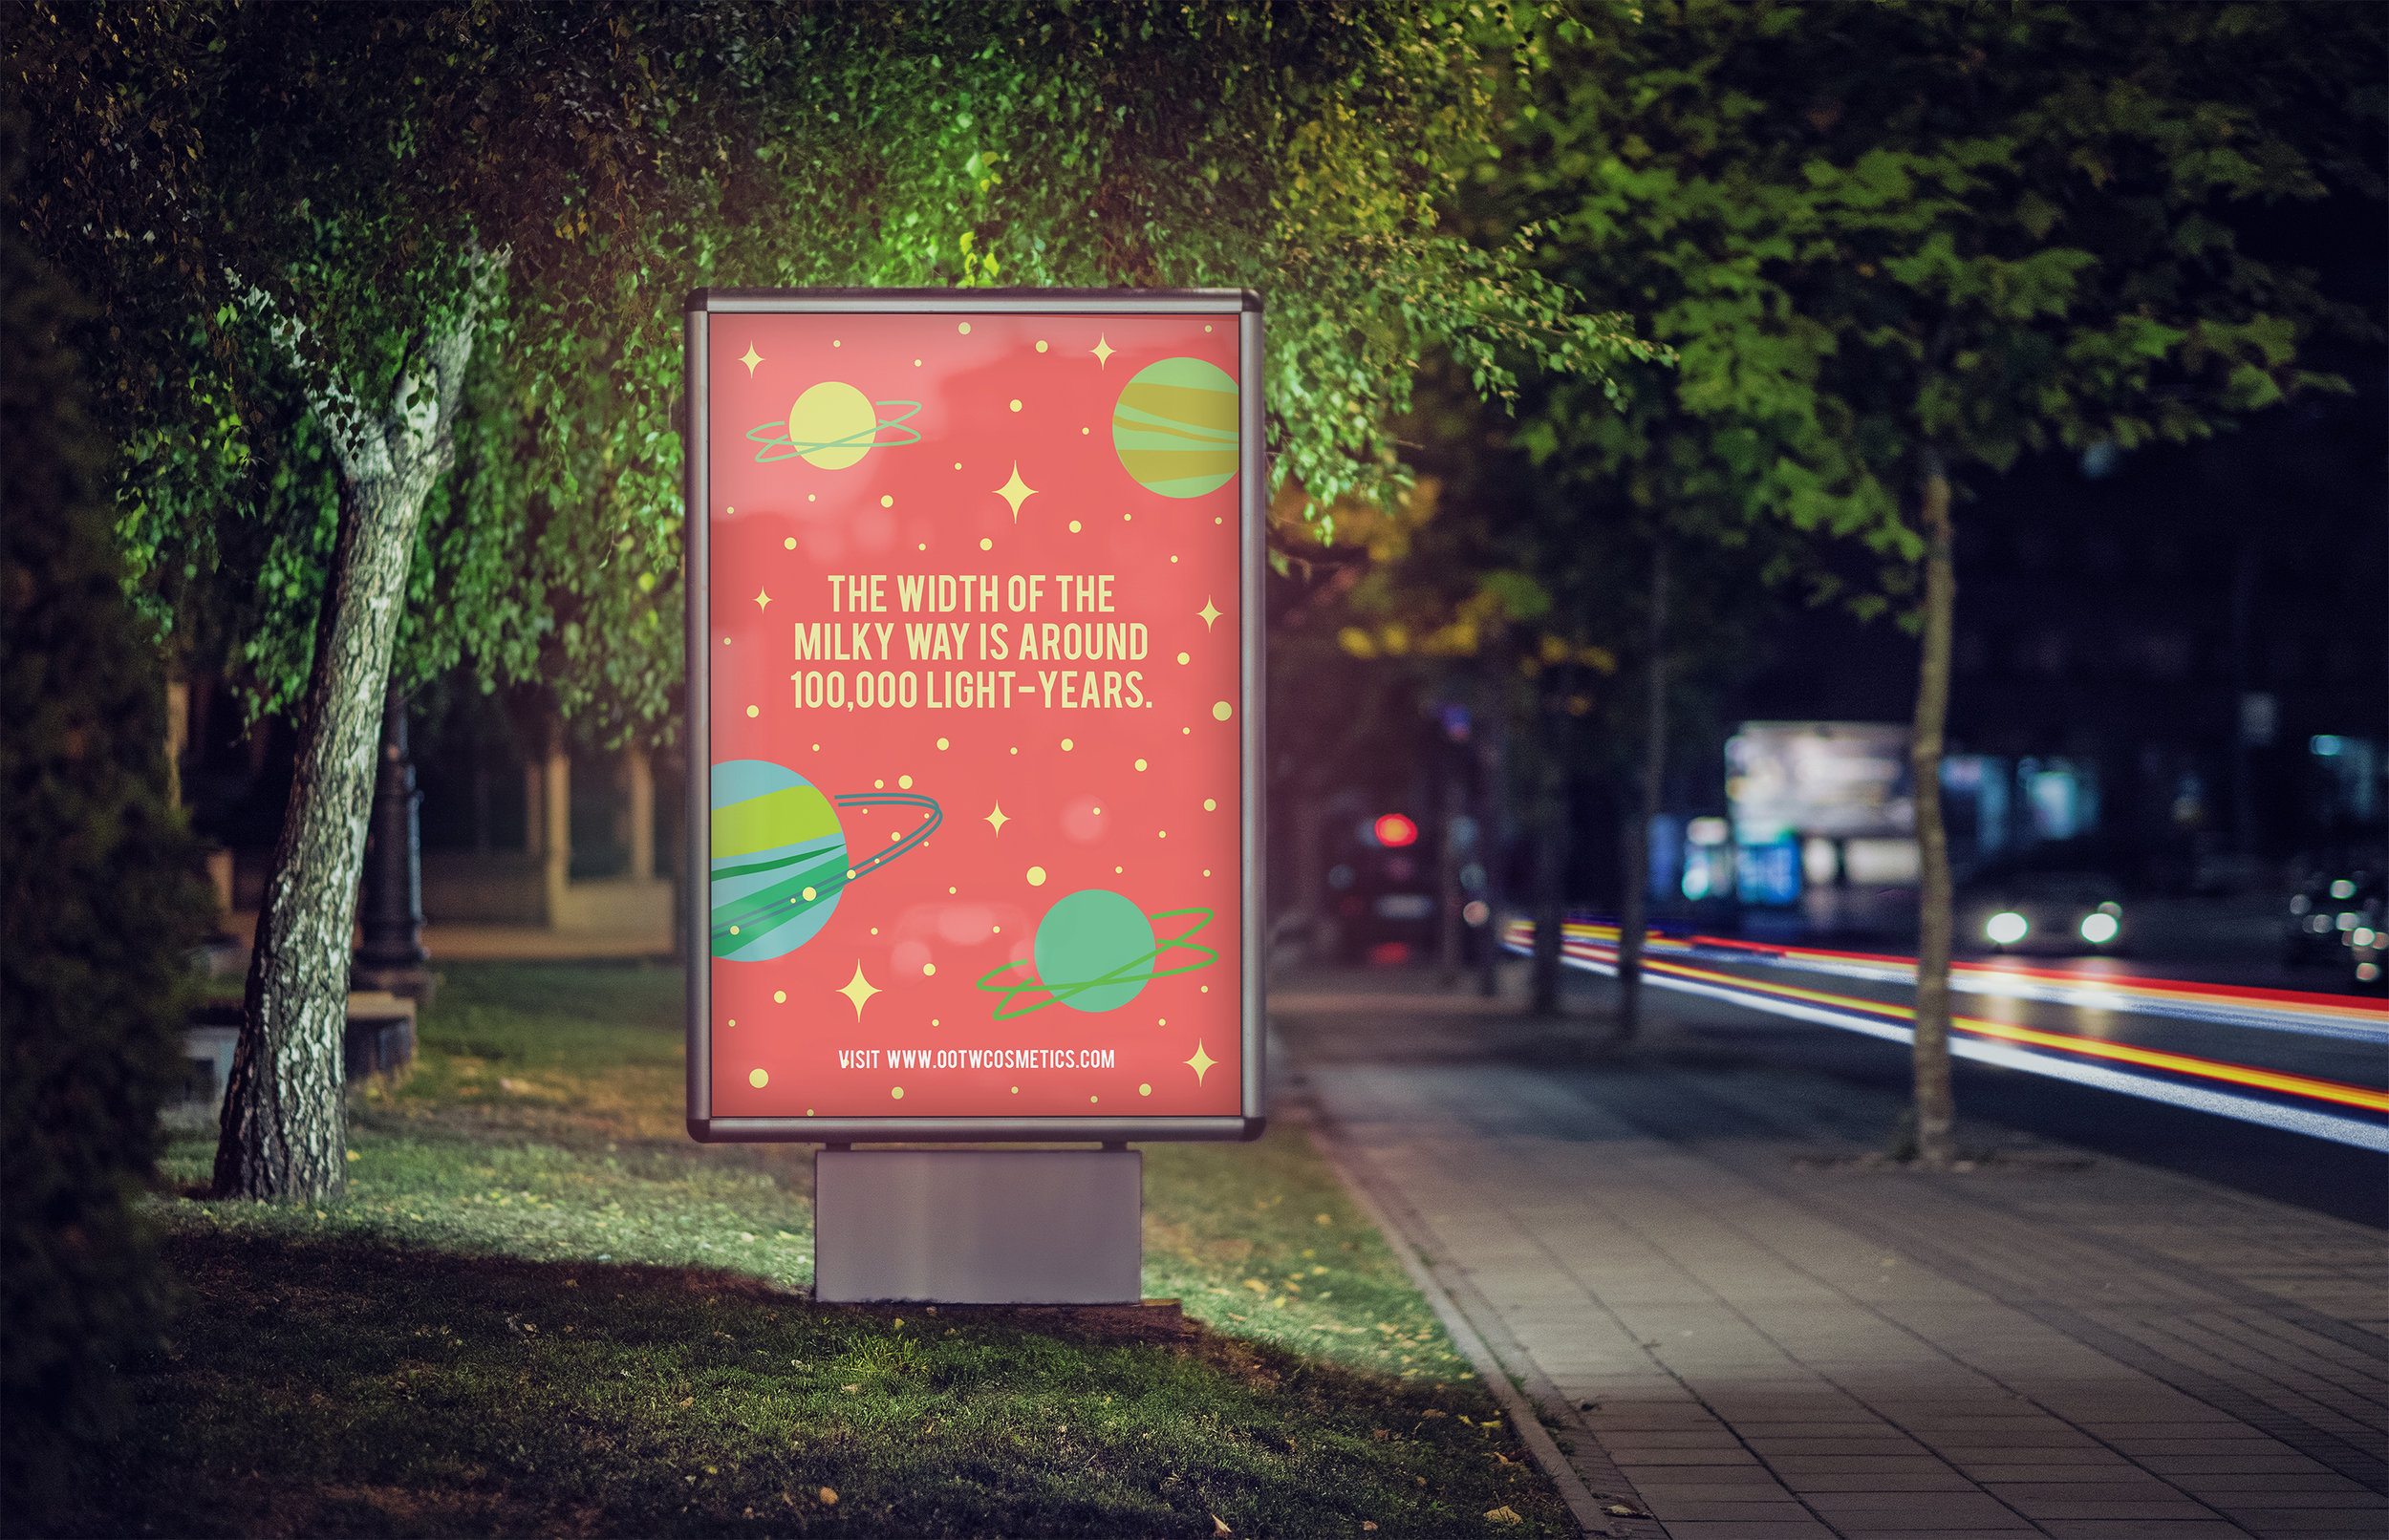 05_Outdoor_Advertising_Mockup-Vol.2 copy.jpg